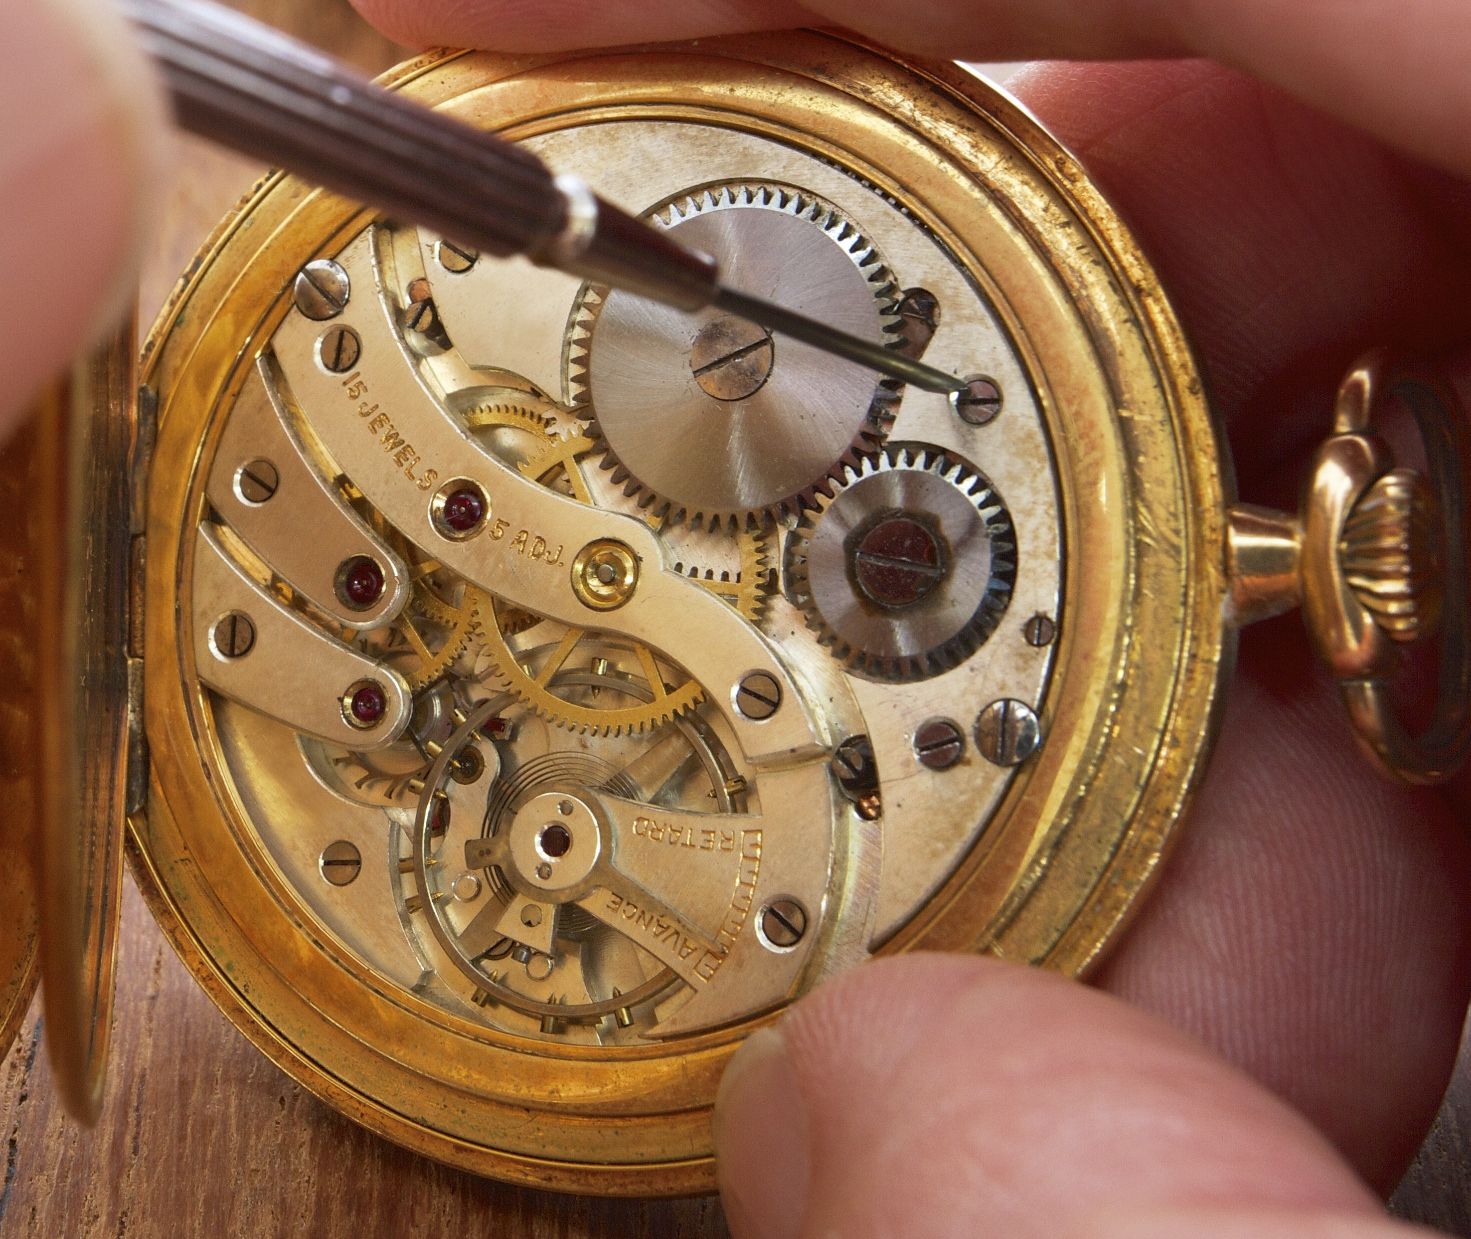 hands that repair an old pocket watch